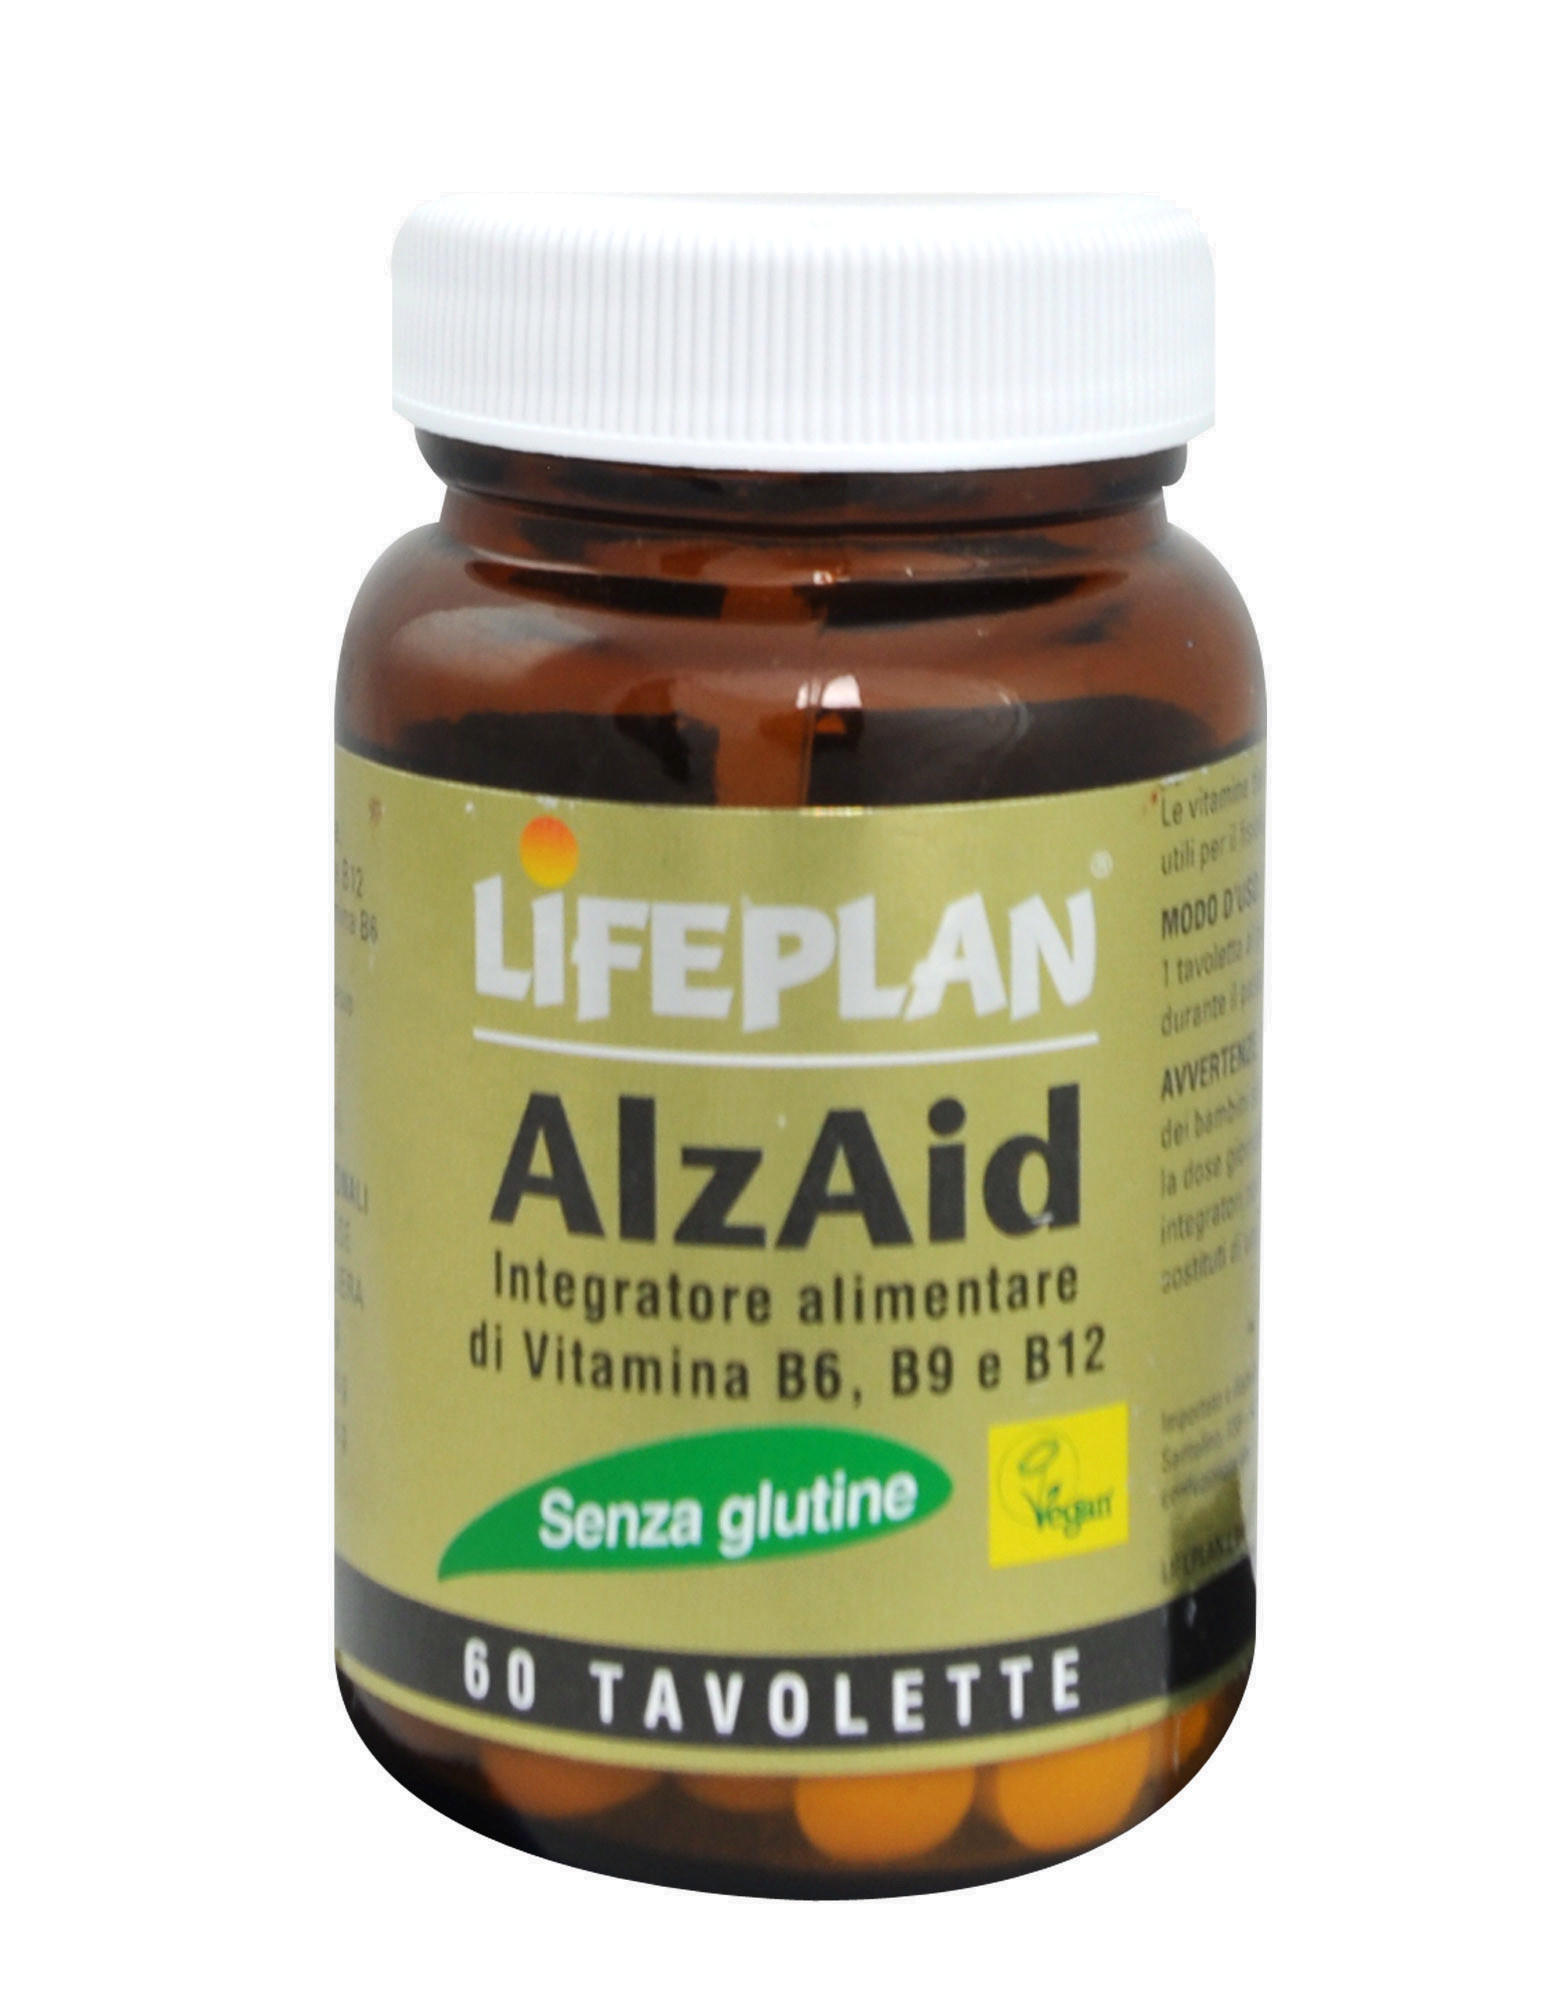 AlzAid by LIFEPLAN (60 tablets) € 17,82